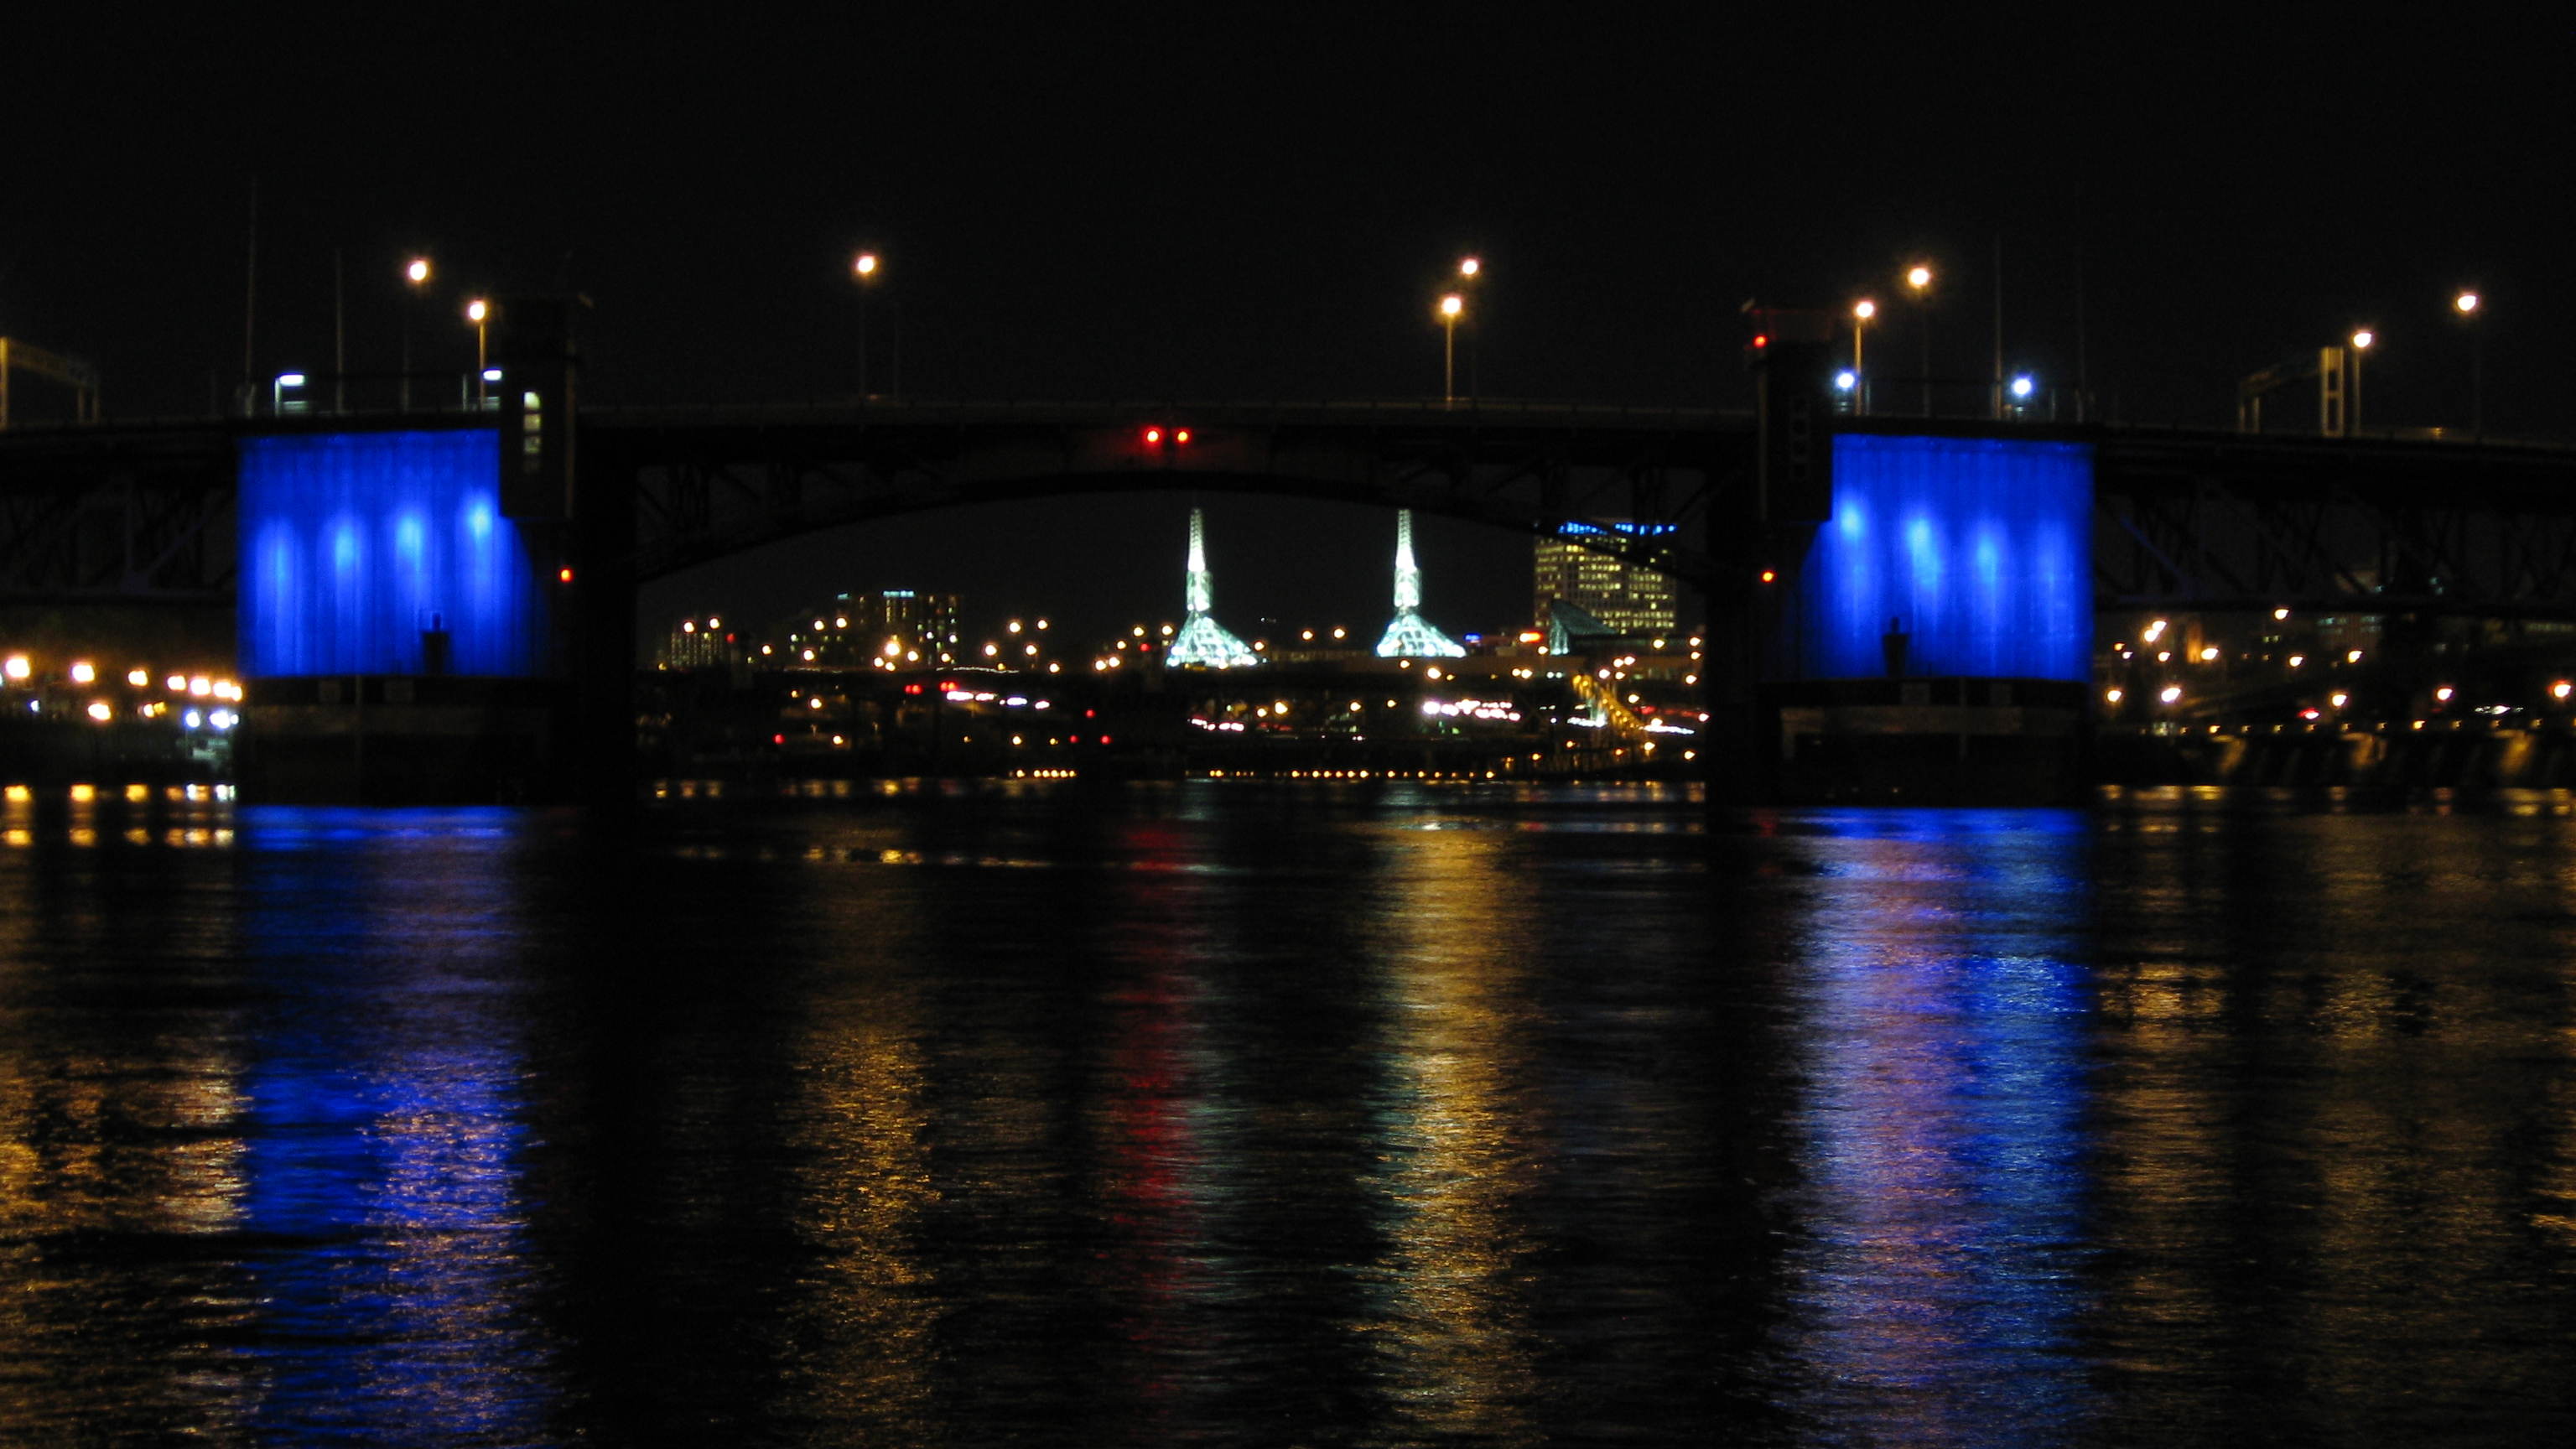 Morrison Bridge in Portland is lit blue to honor World Autism Awareness Day on April 2, 2012.